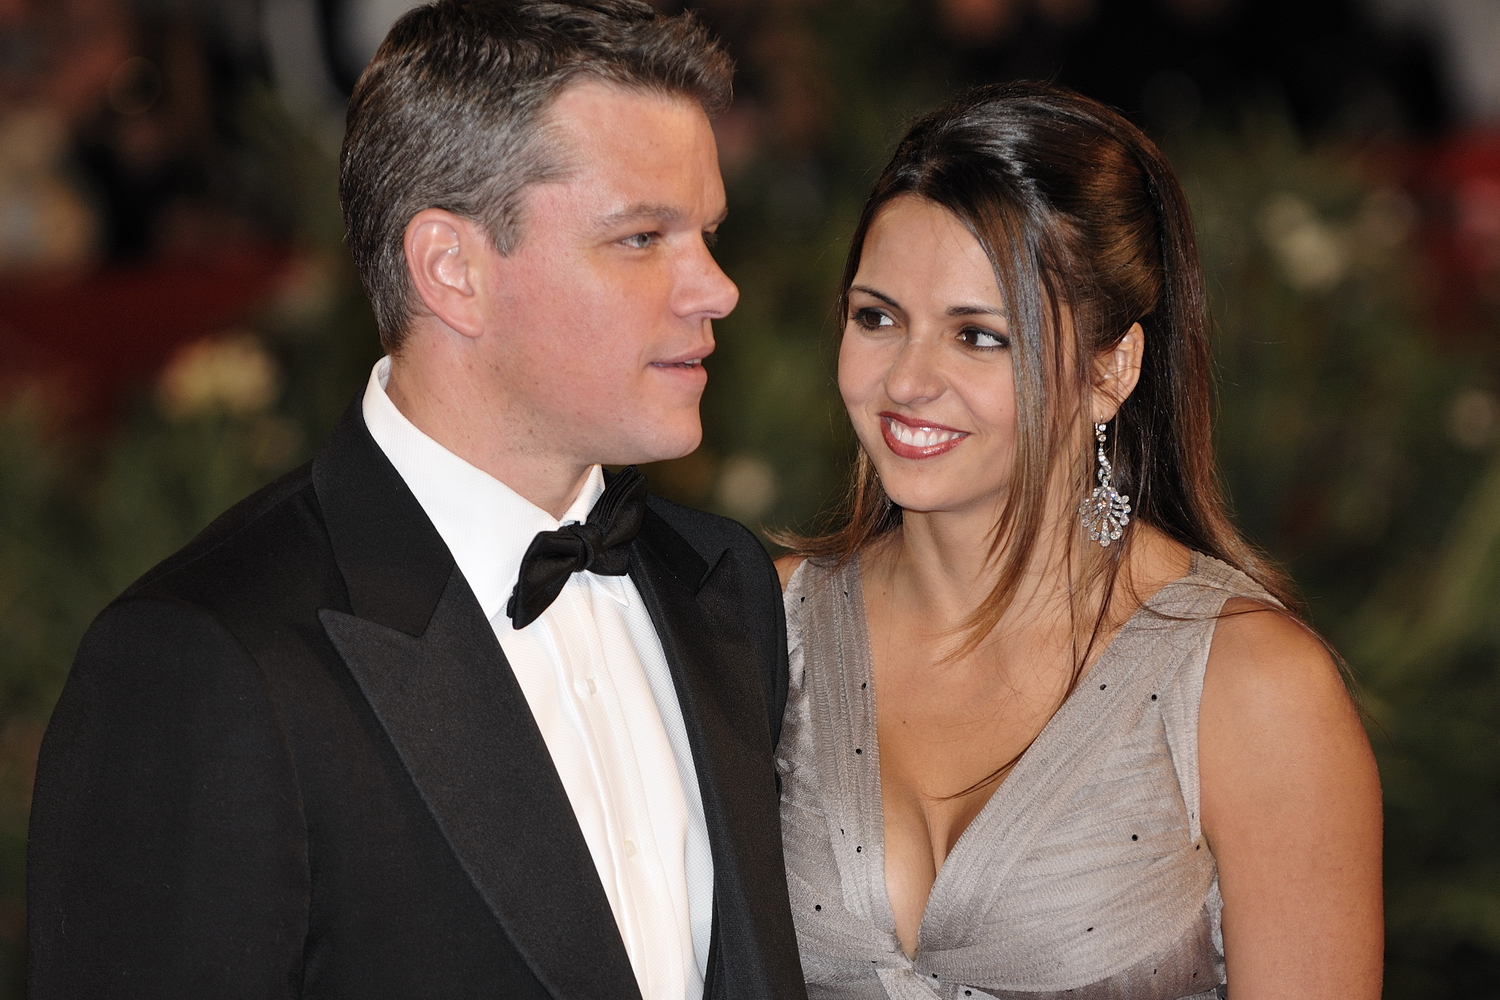 hollywood all stars matt damon and his wife pictures